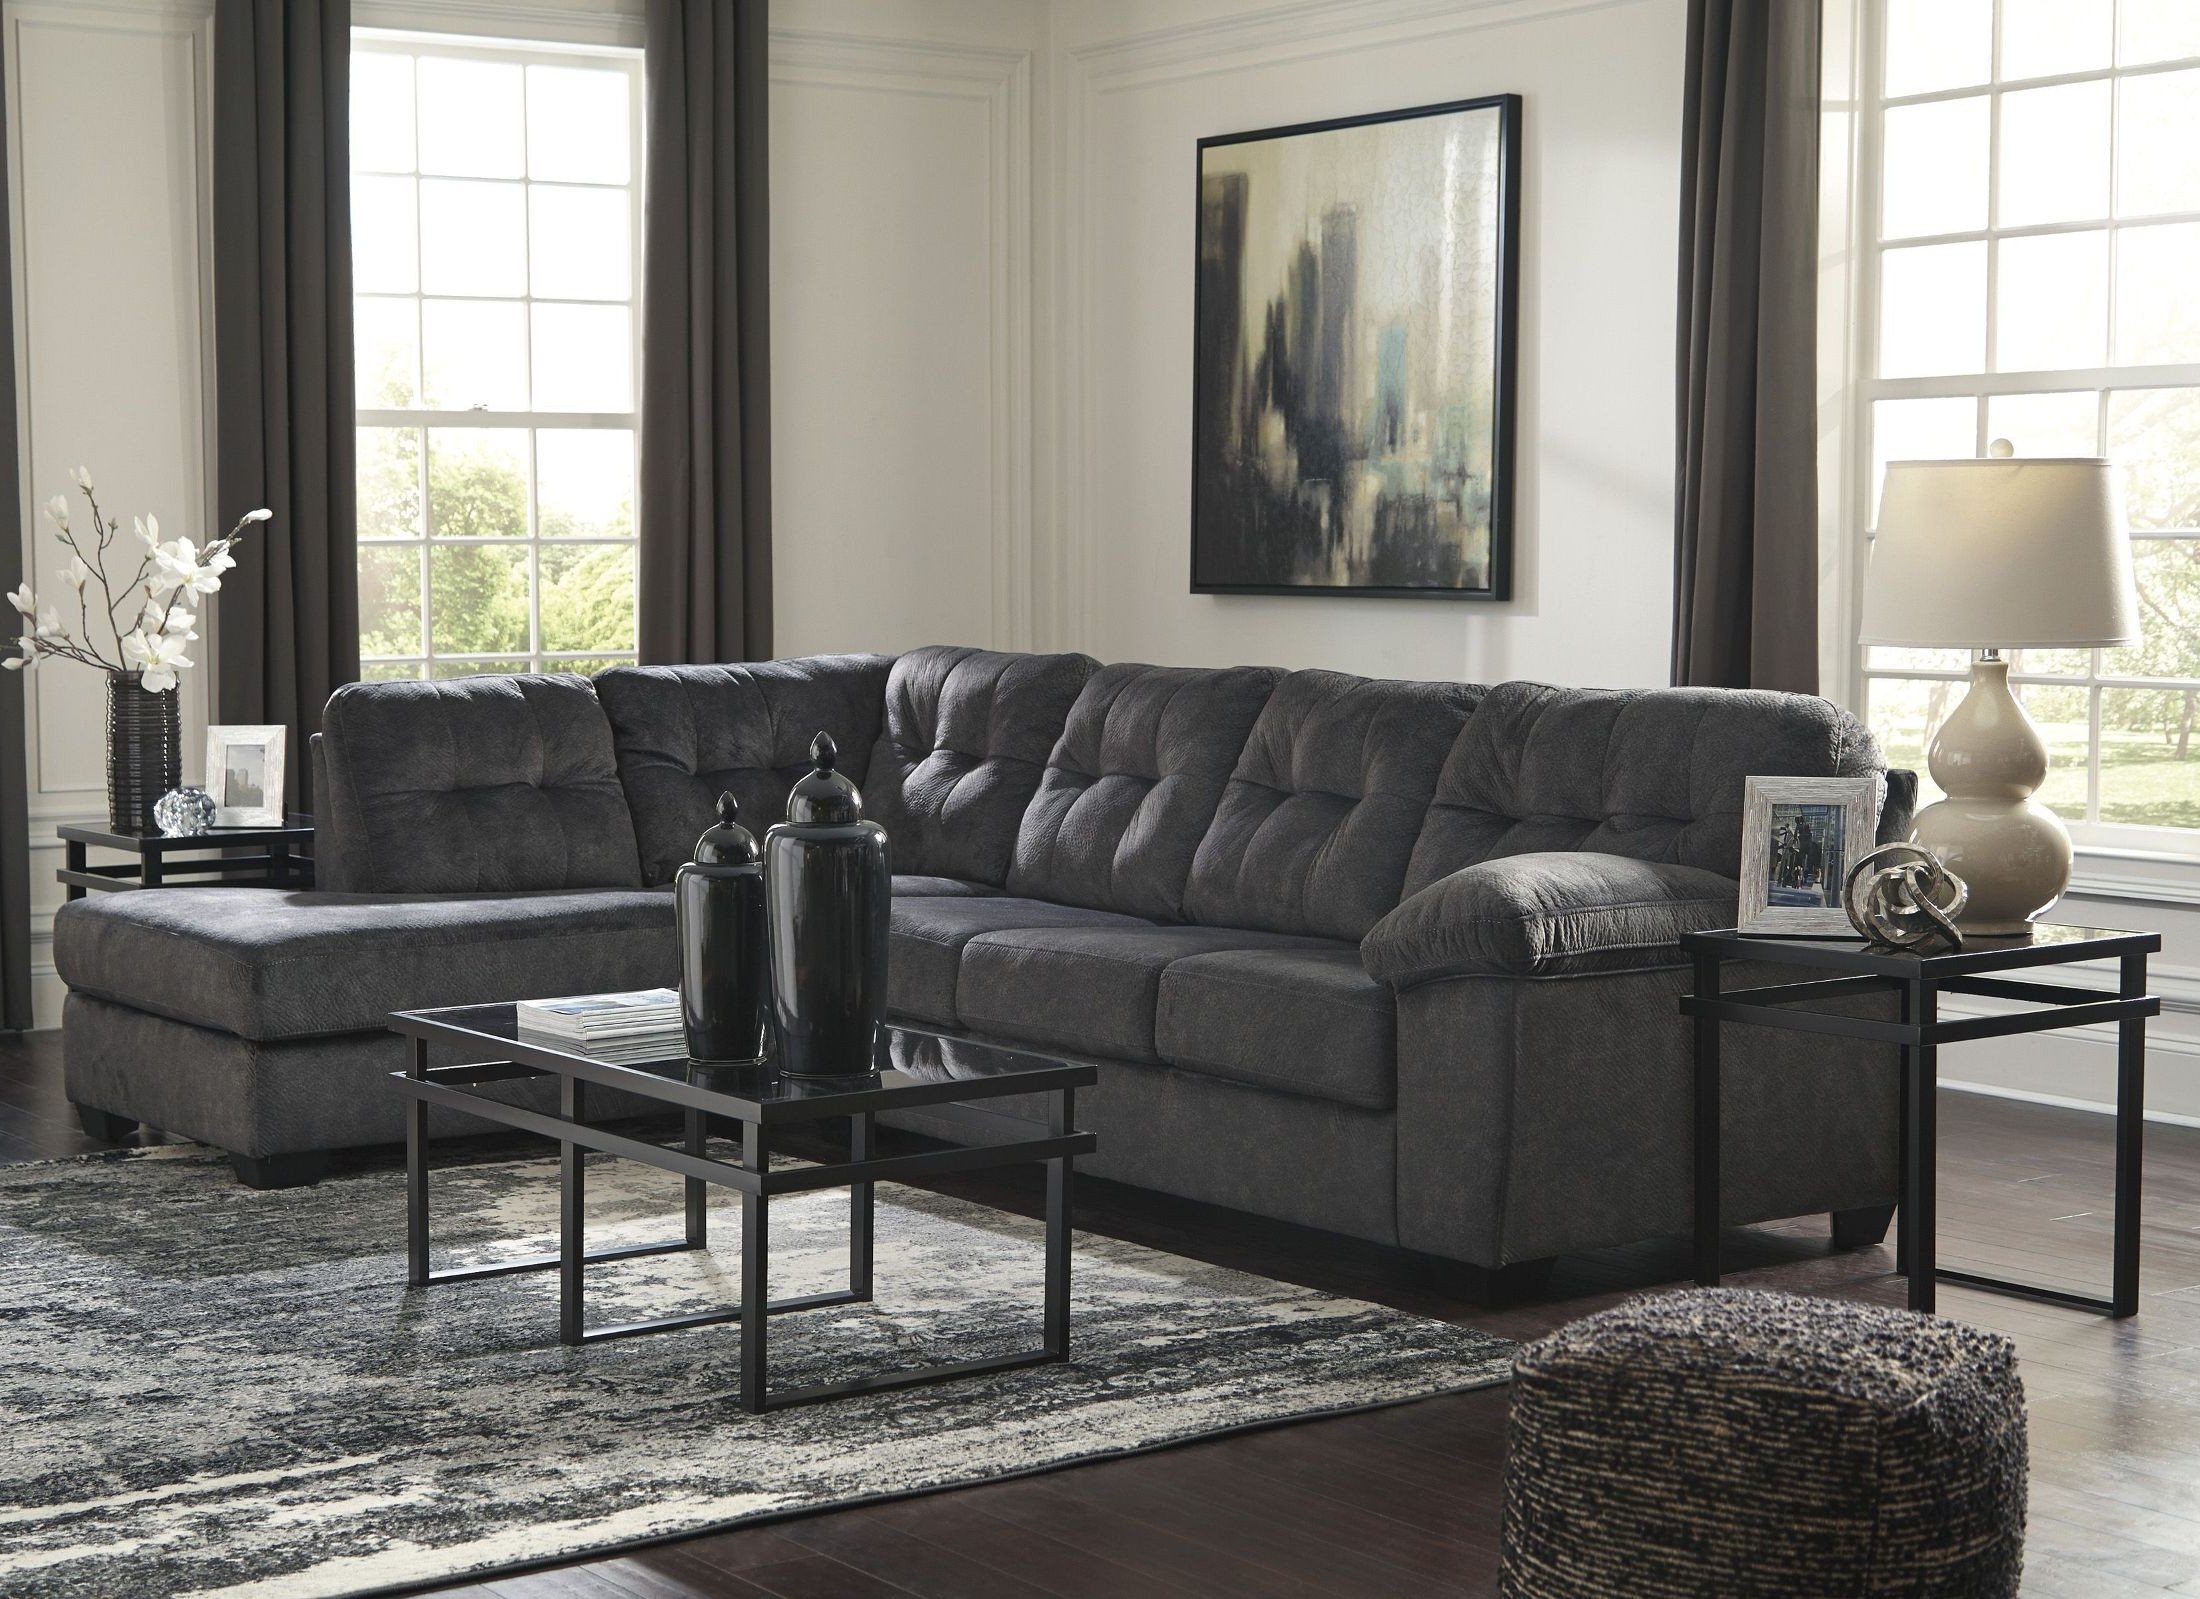 Popular Kerri 2 Piece Sectionals With Raf Chaise Inside Signature Designashley Accrington Granite Raf Sectional (View 15 of 20)